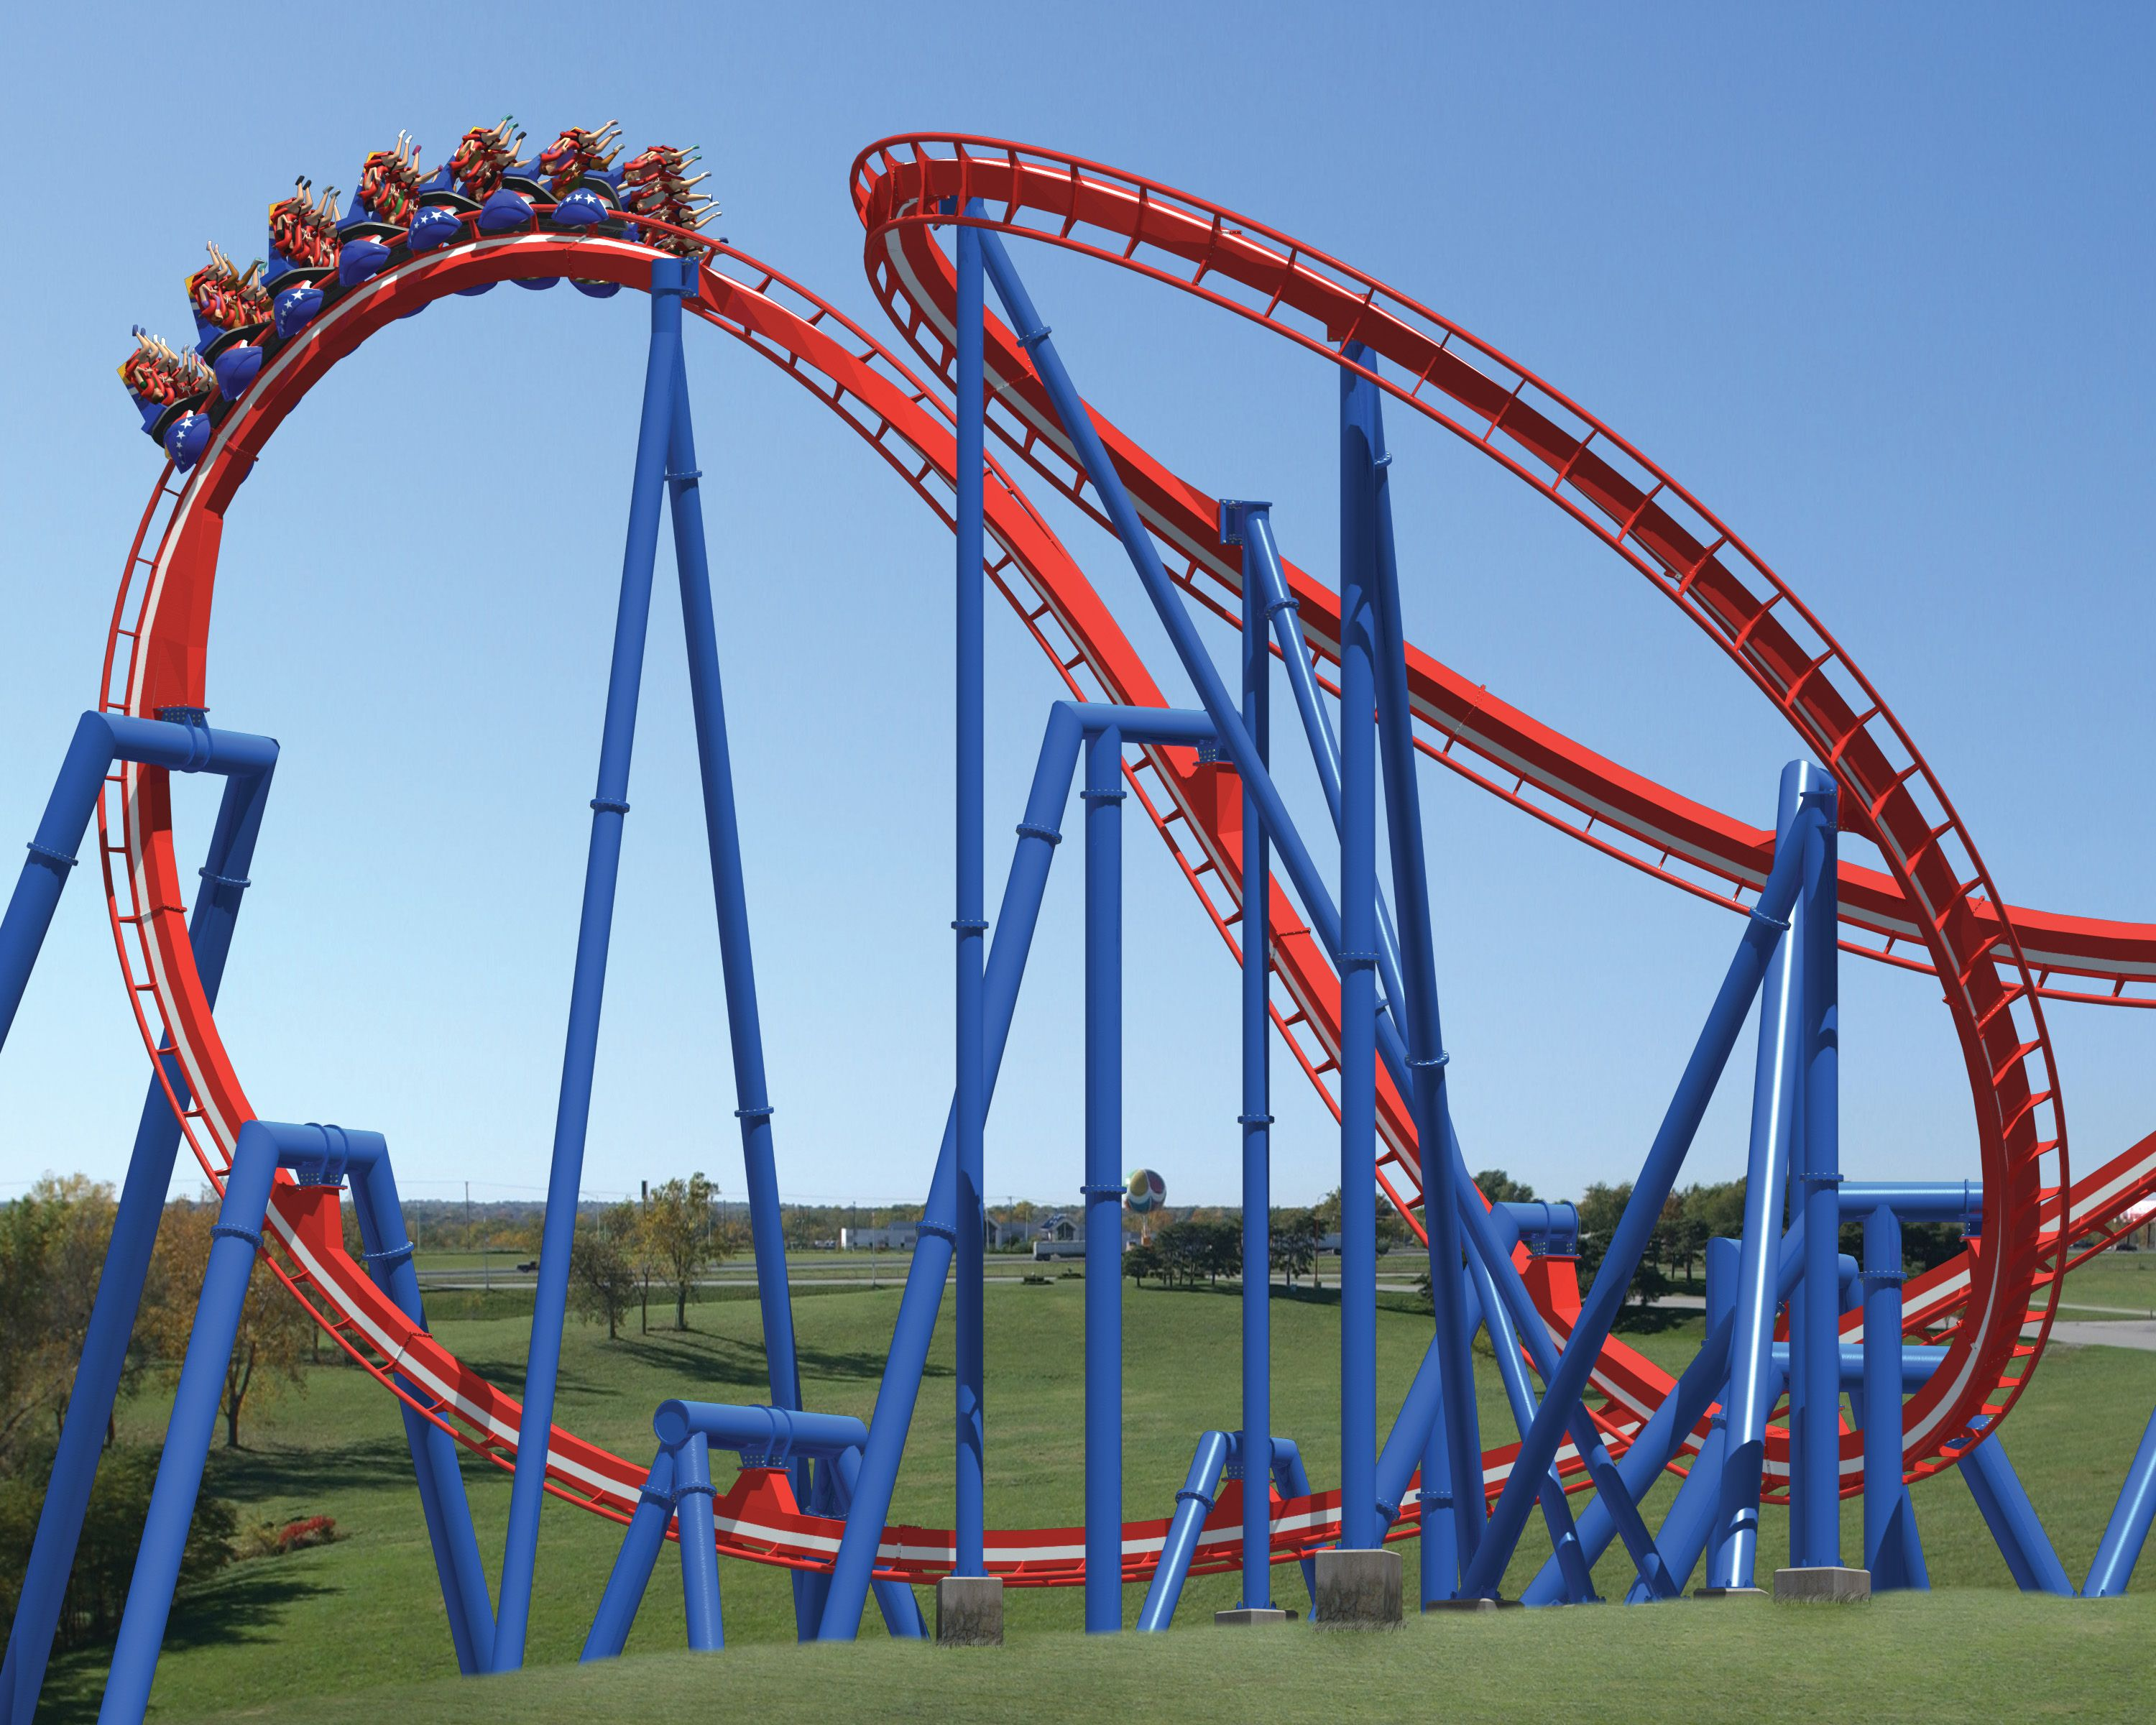 Ride The Patriot At Worlds Of Fun Worlds Of Fun Roller Coaster Ocean Fun